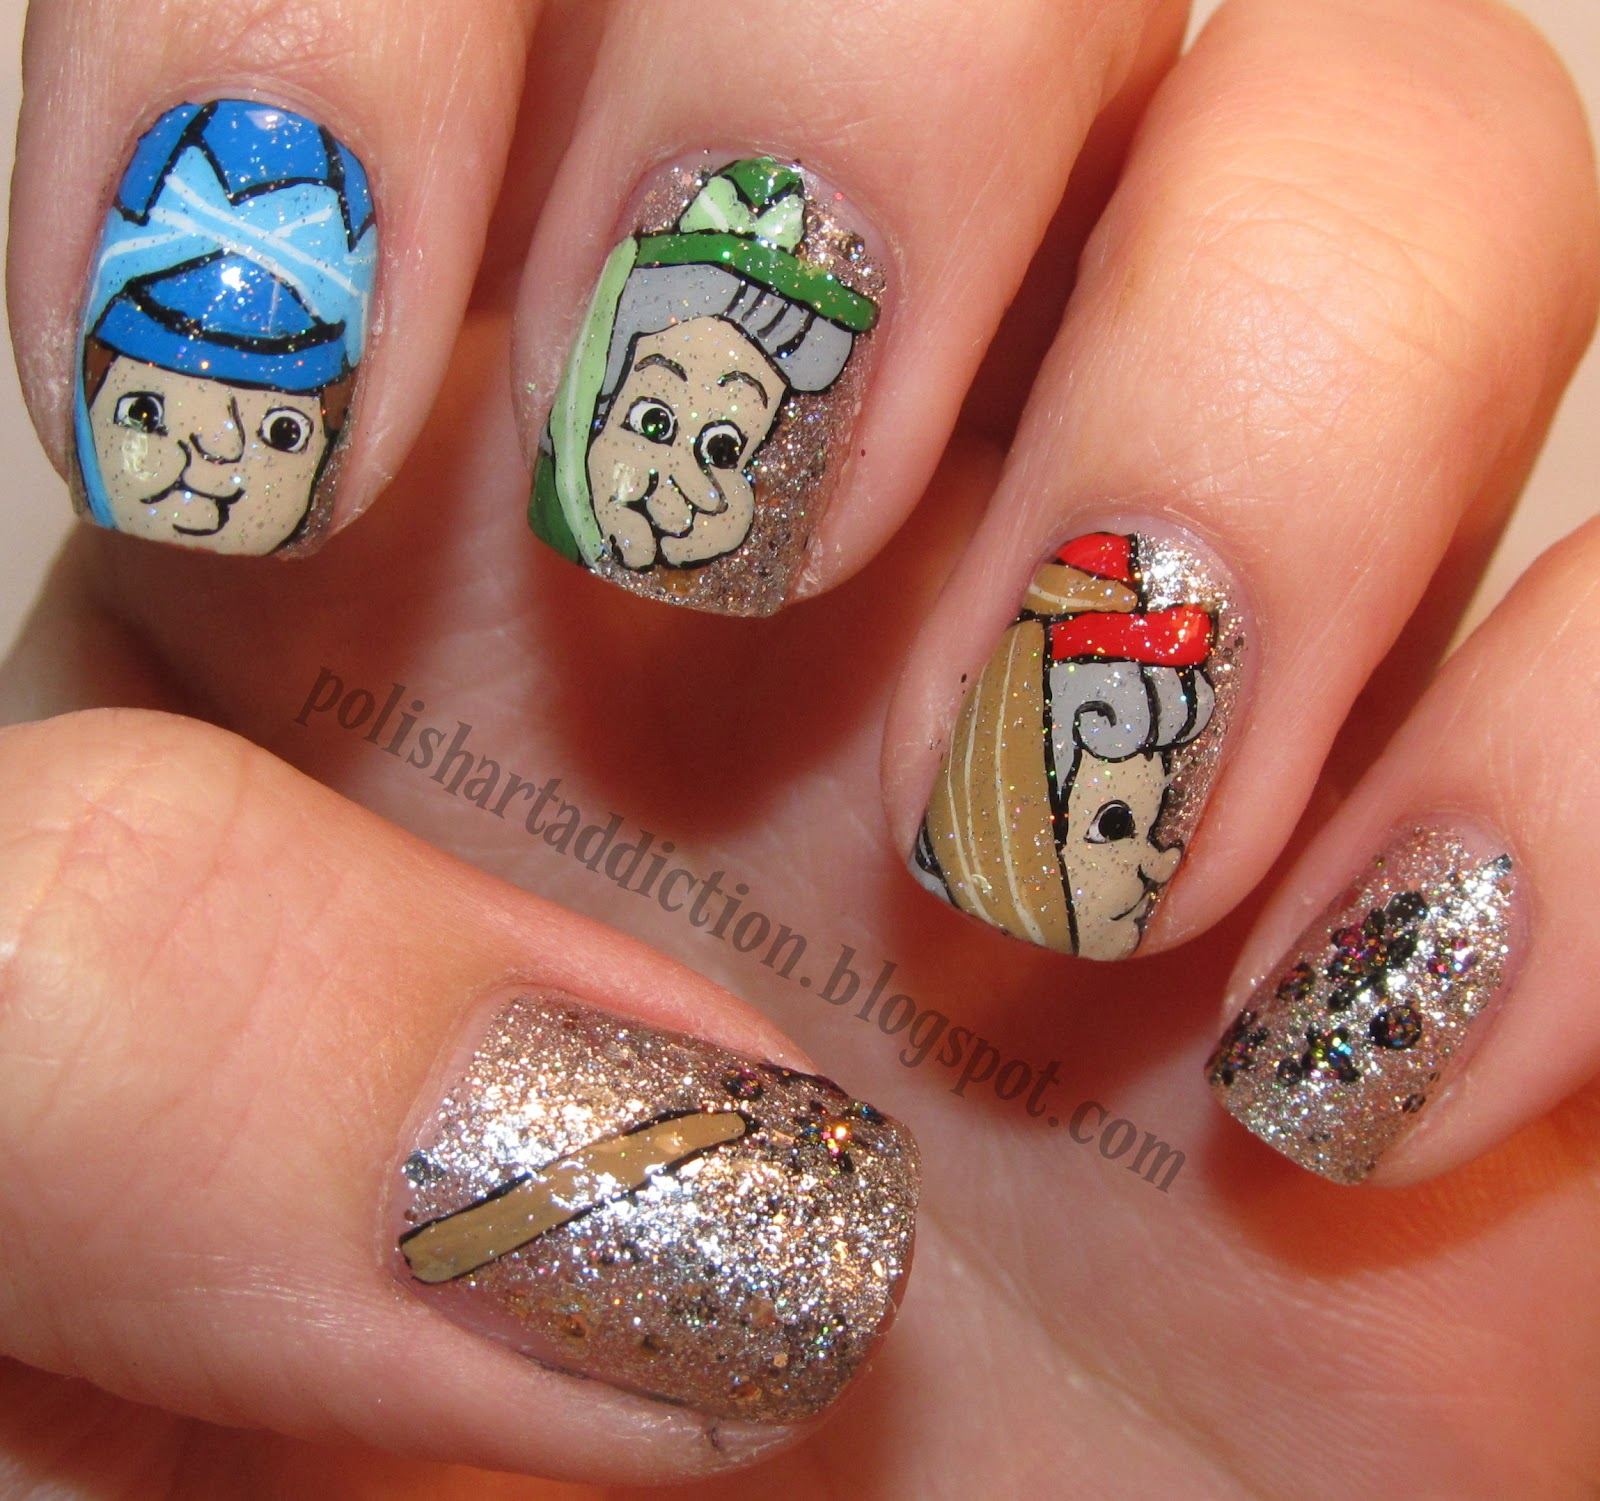 Sleeping Beauty Nails: In The Sunlight They Really Sparkle